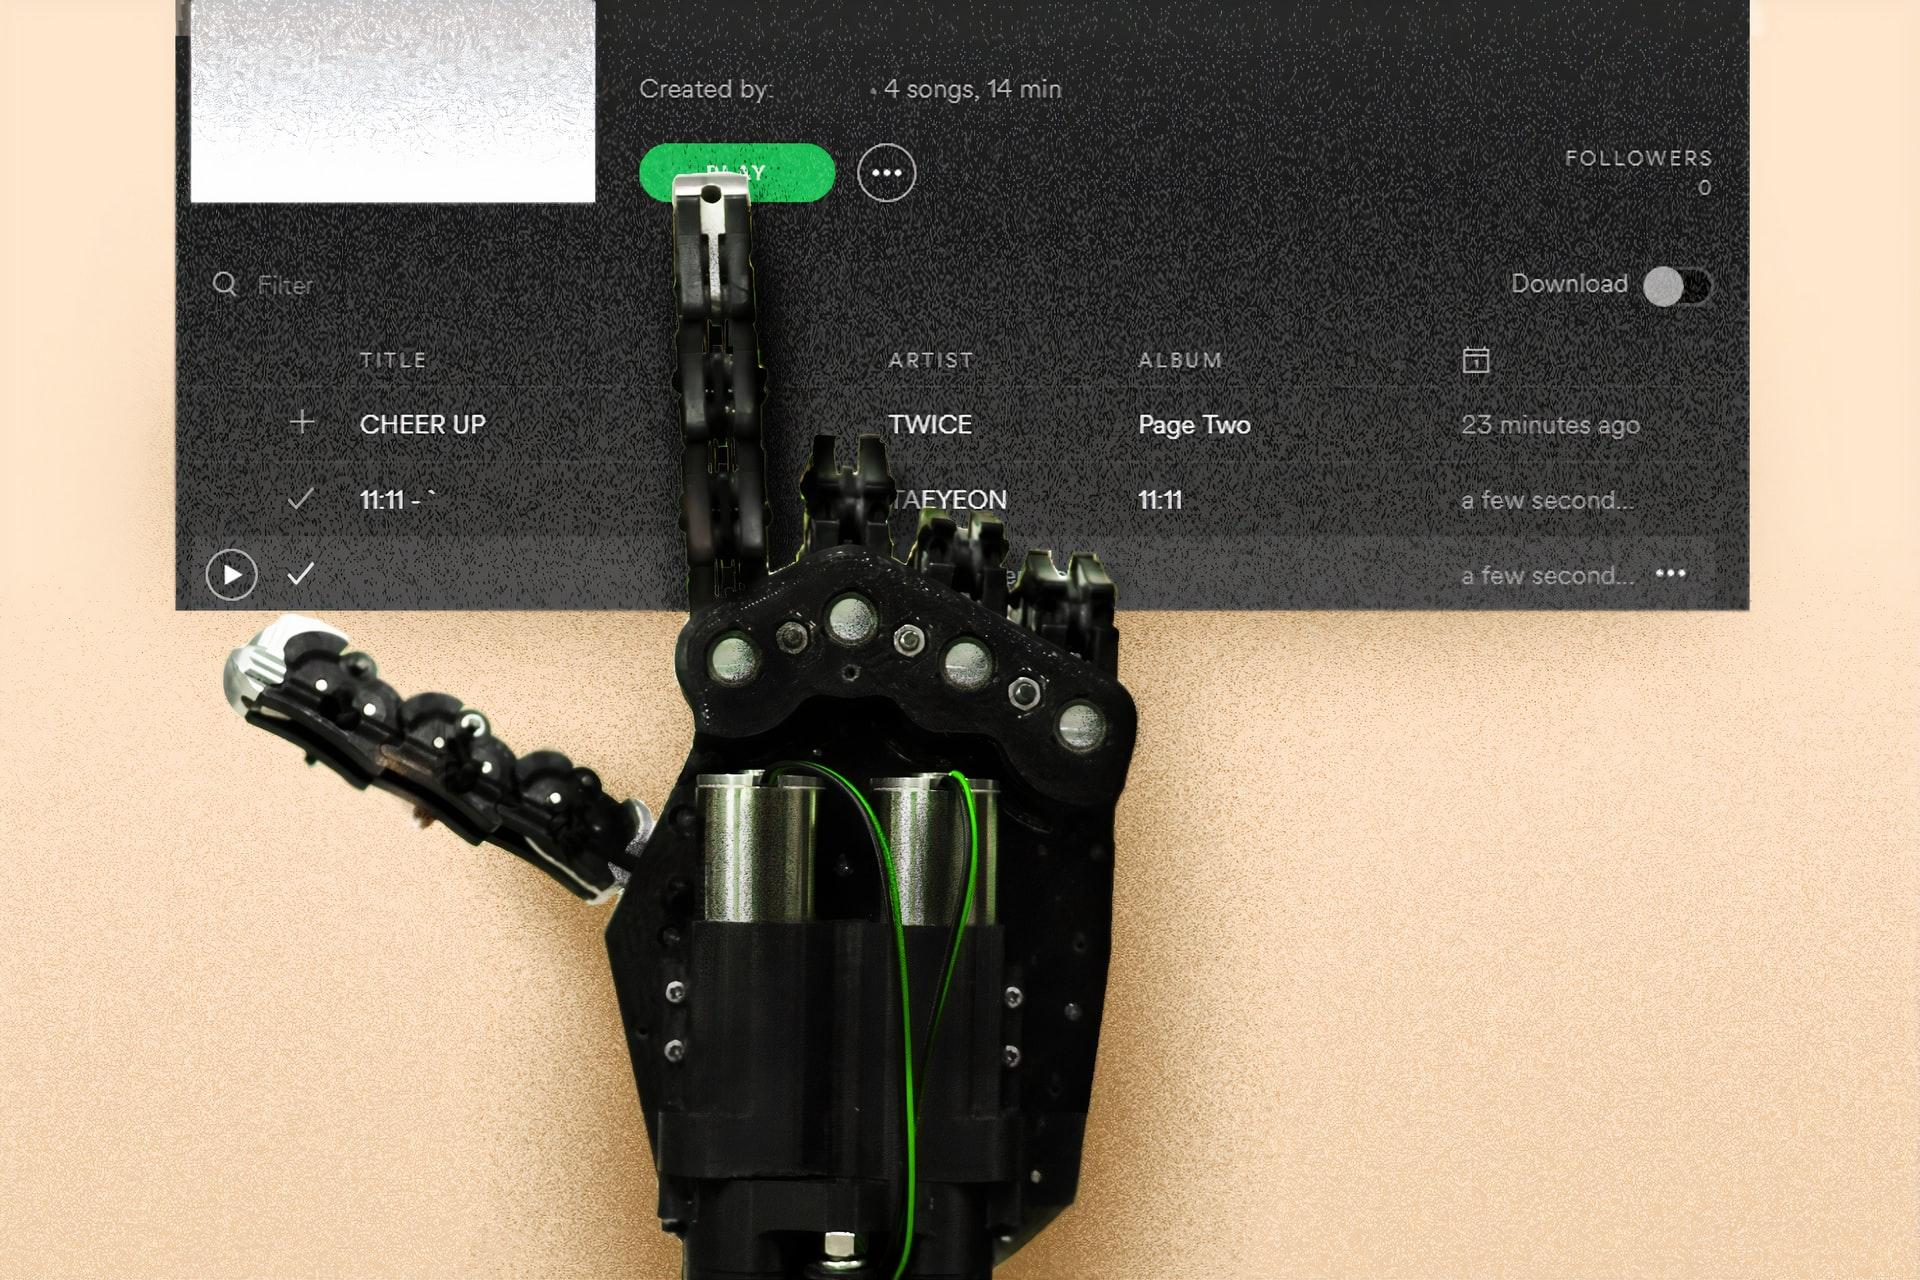 Spotify SPA - pressing a green button with the robot's hand